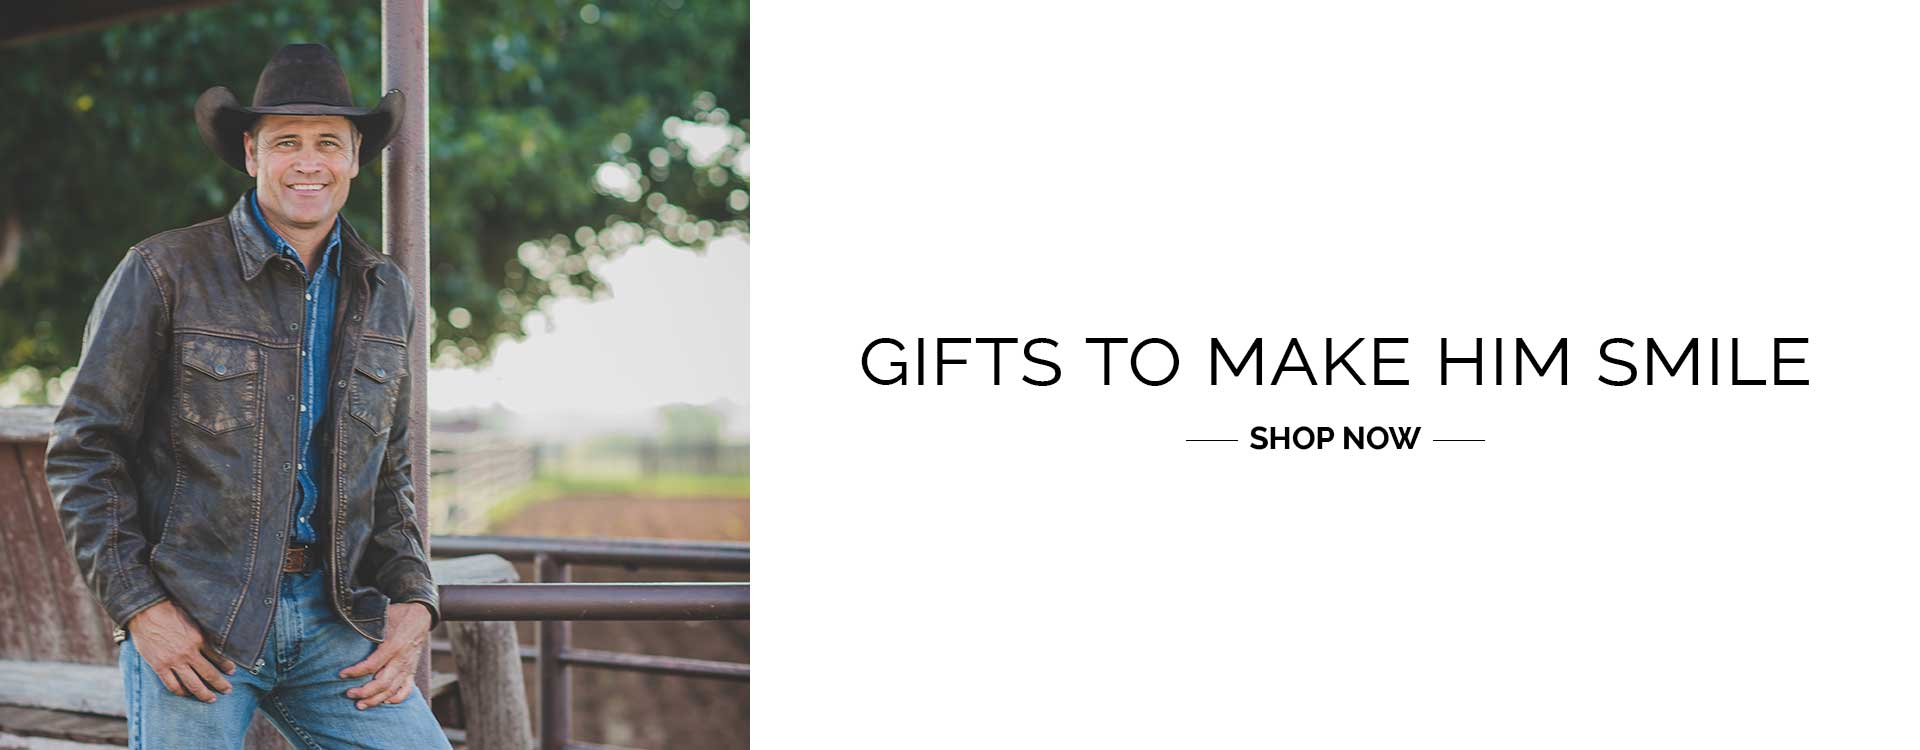 Gifts to make him smile. Shop now - STS Ranchwear 2020 Holiday Gift Guide